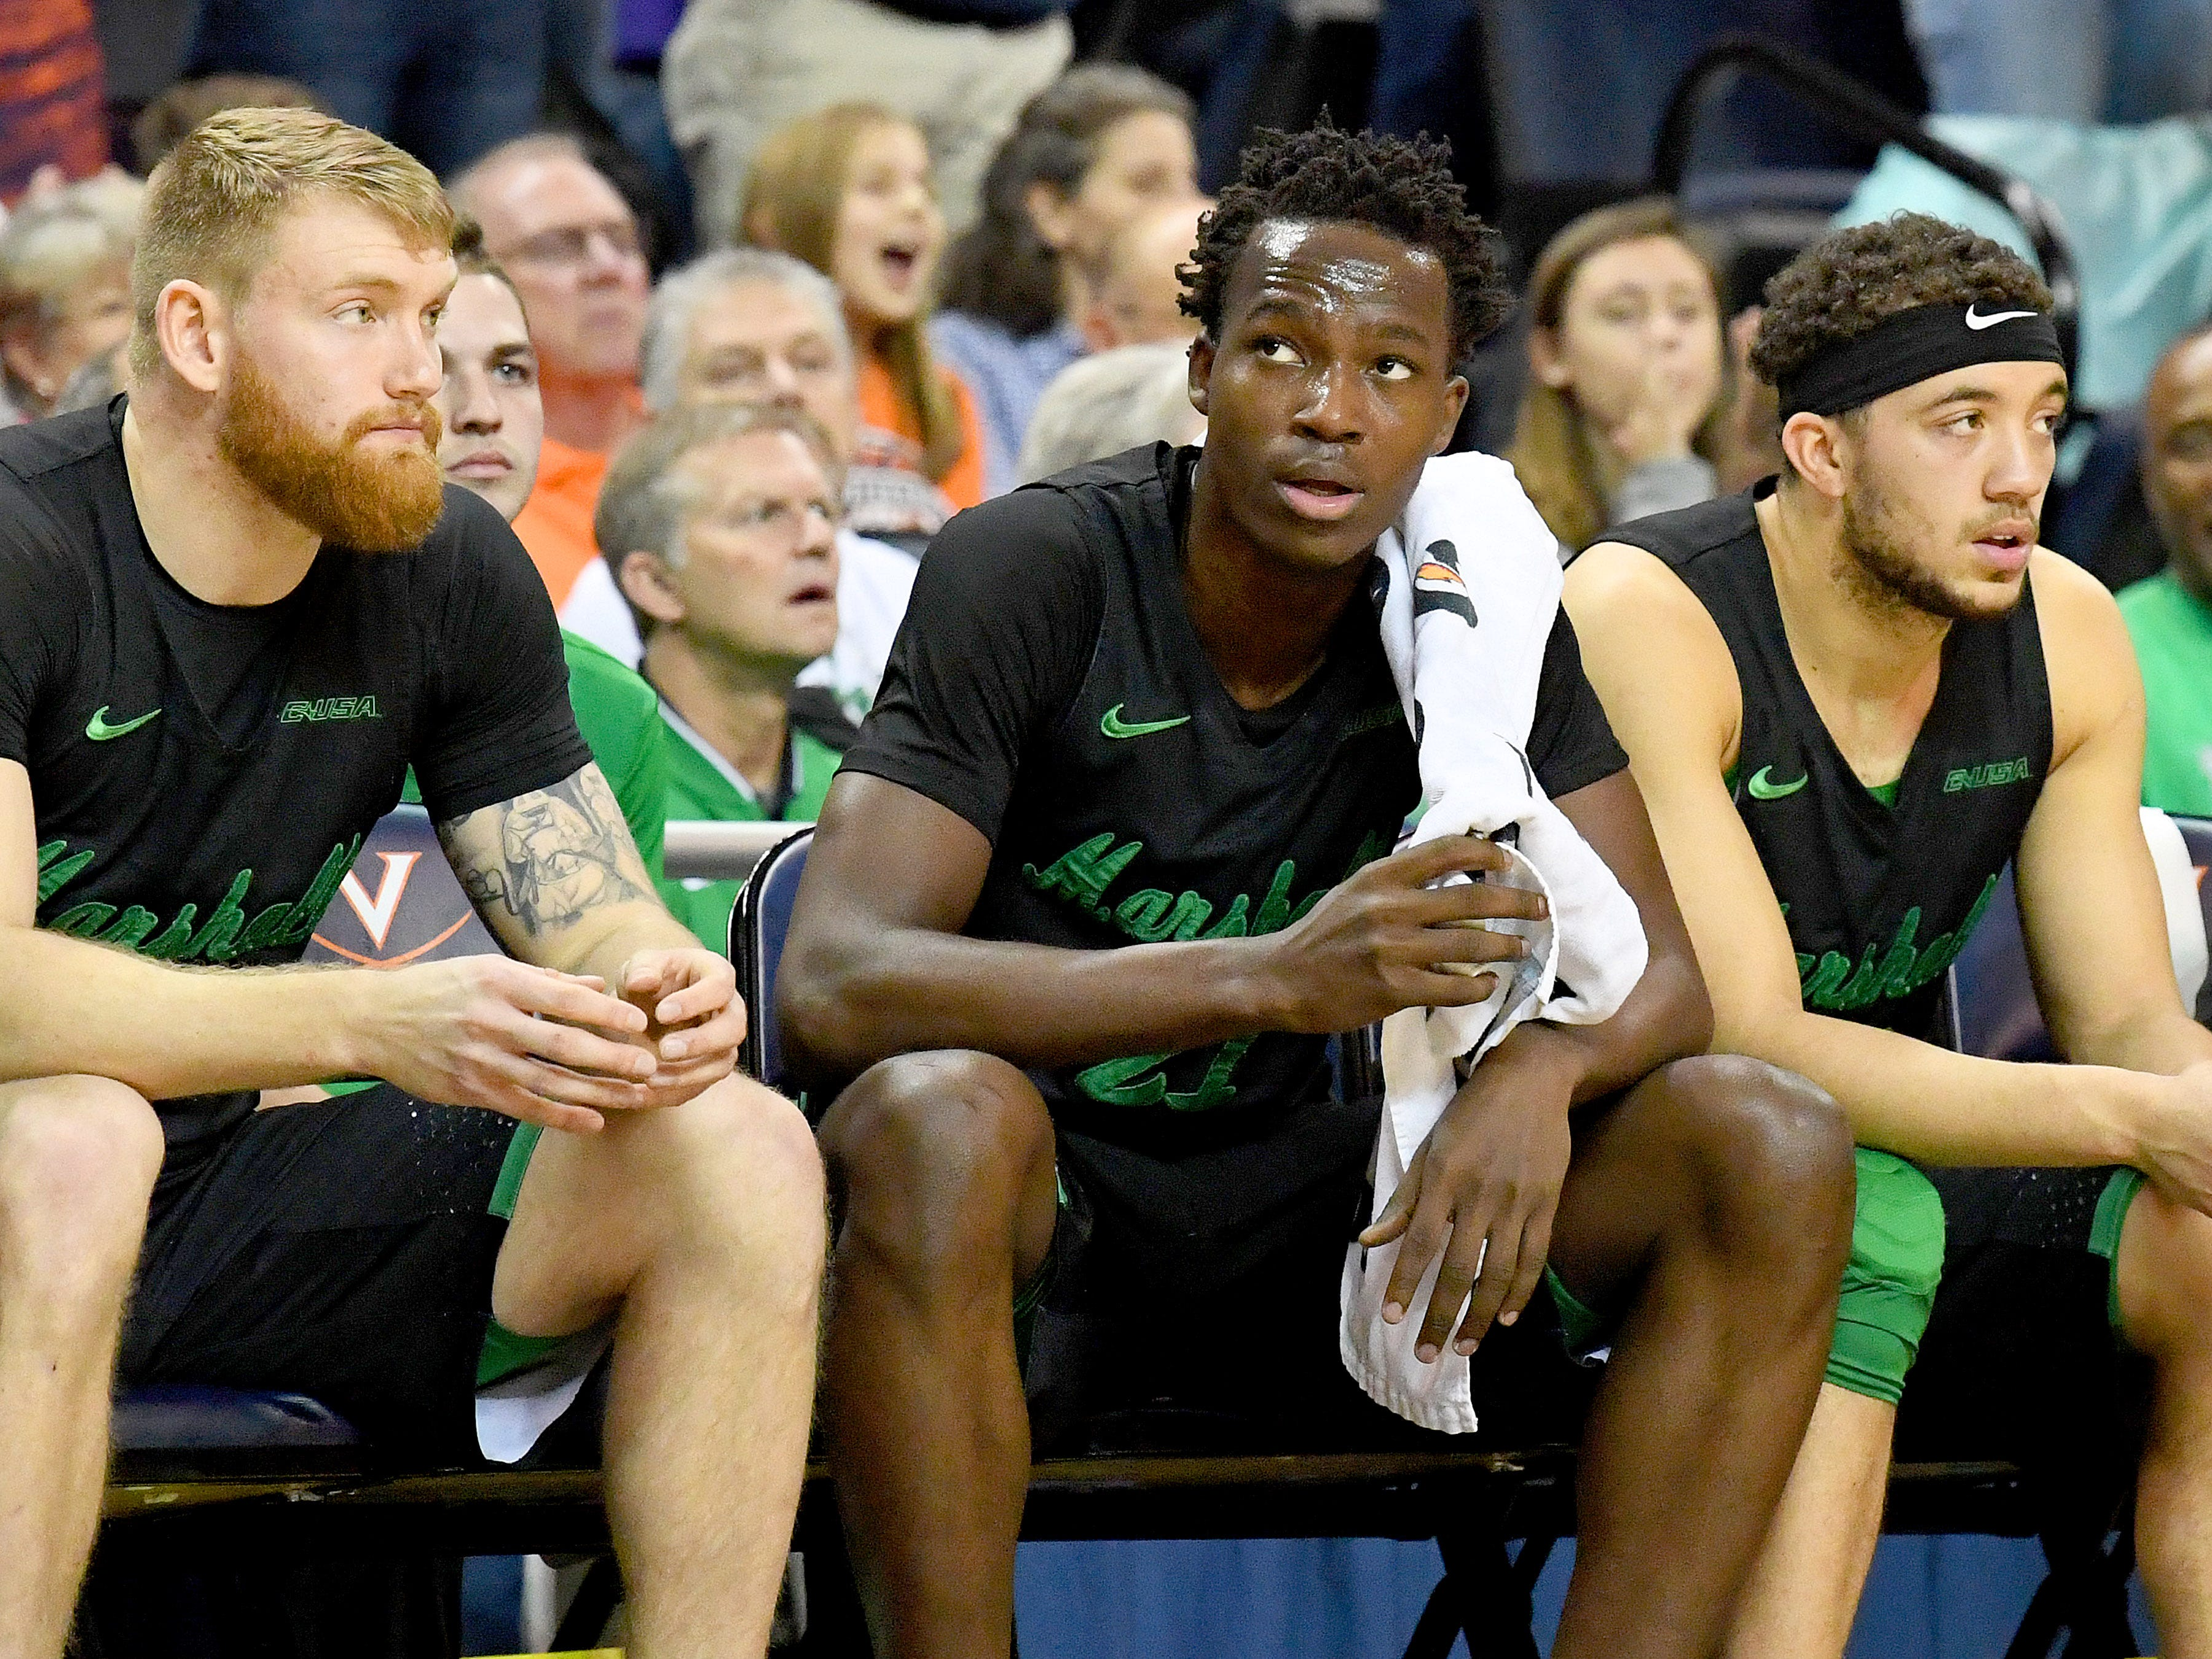 Marshall's Darius George, former R.E. Lee star, watches the action on the court from the sidelines during their game against University of Virginia, played at the John Paul Jones Arena on Dec. 31, 2016.